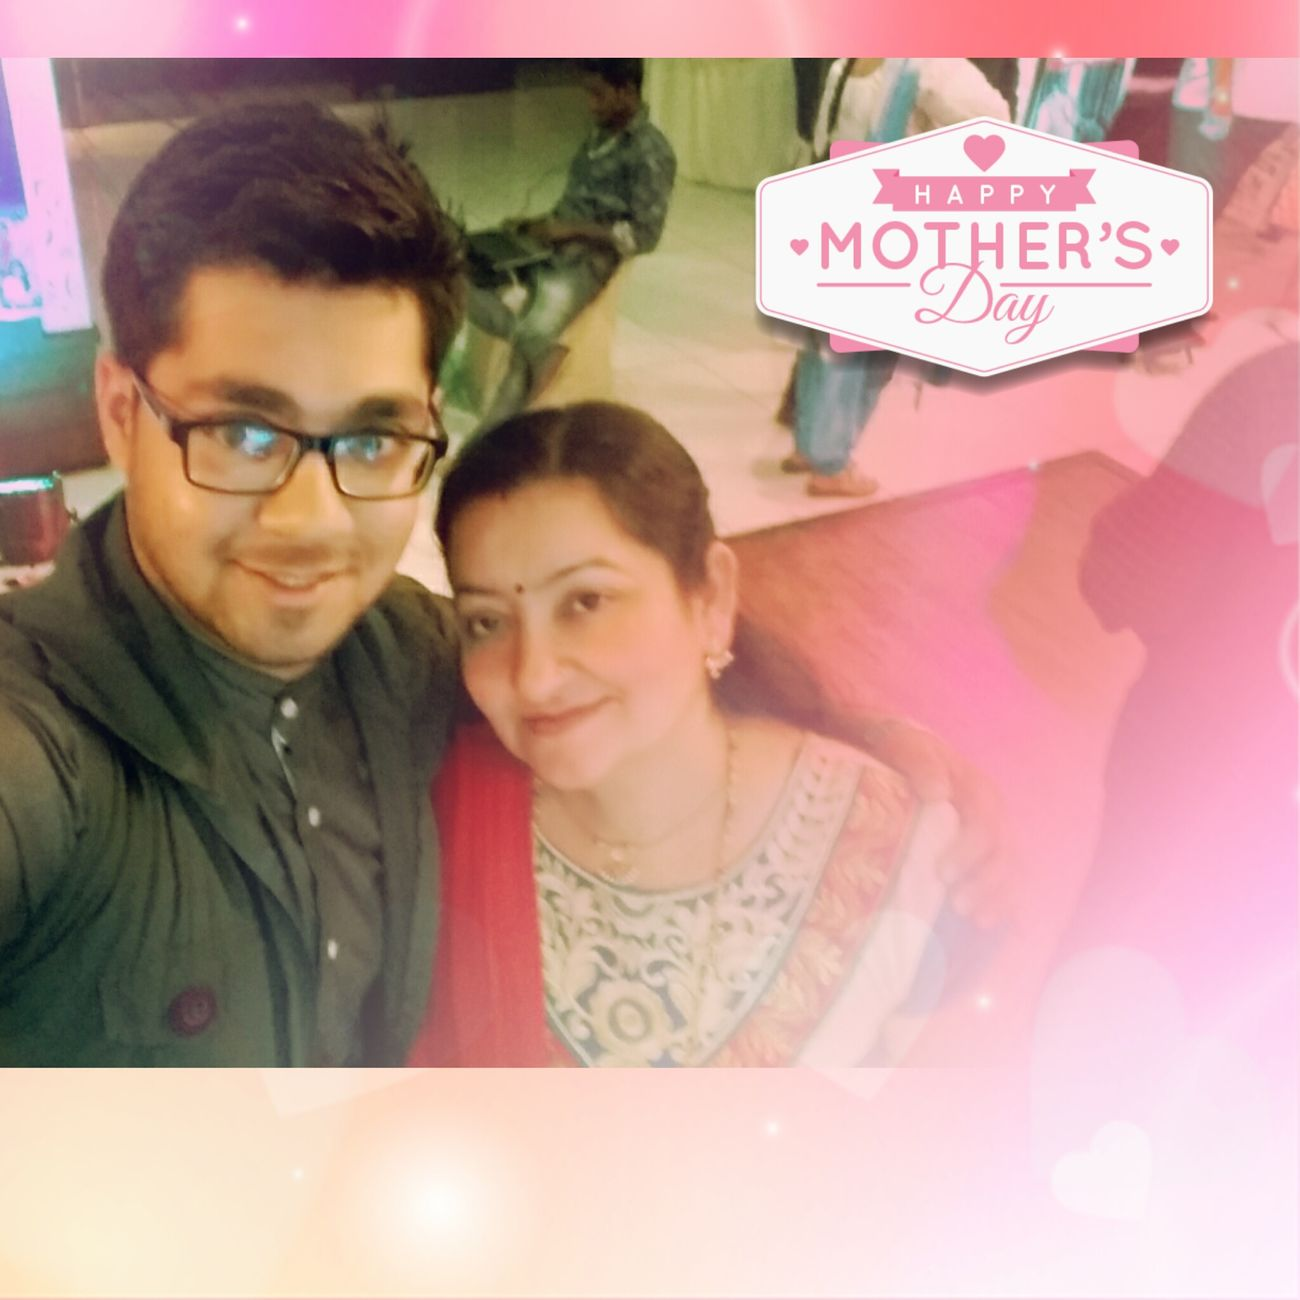 Happy Mothers Day ❤ Luvin_it Luv U Mum Awesomeness PartyNight:) Owee Mom ❤ Cool_capture_ Selfie✌ Fairground Fairness Traditional Clothing Zaafran Swaggin Indianclassypeople Snapshots Of Life